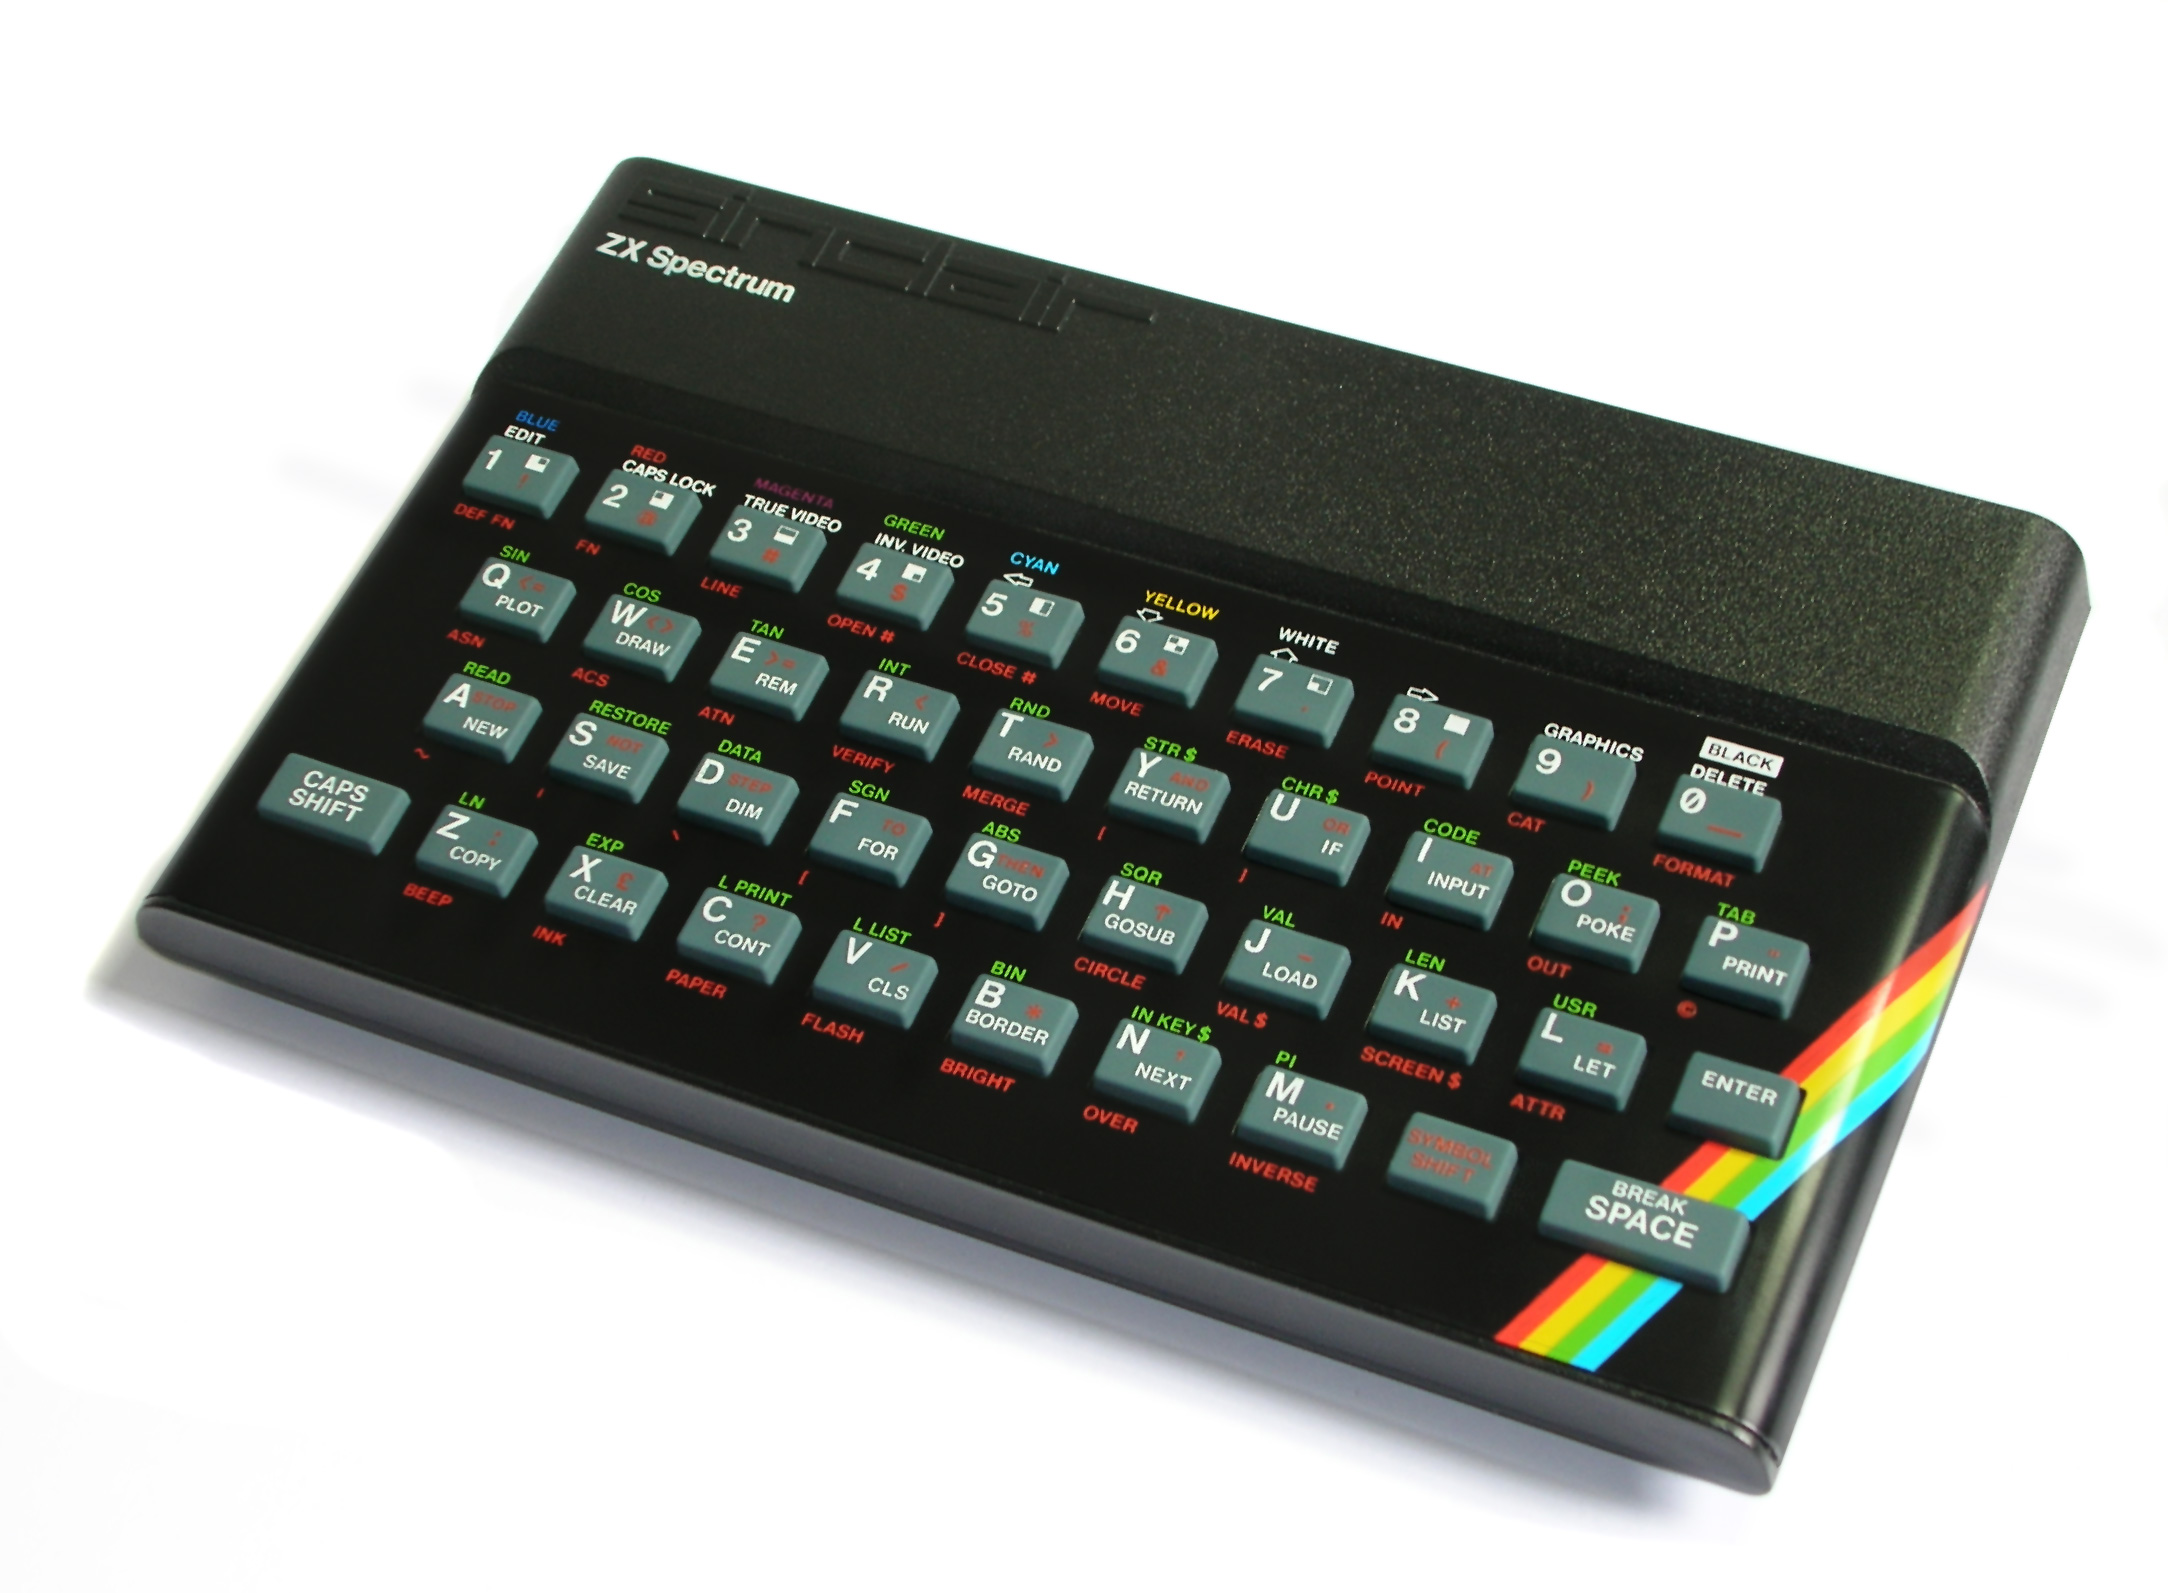 upload.wikimedia.org/wikipedia/commons/3/33/ZXSpectrum48k.jpg